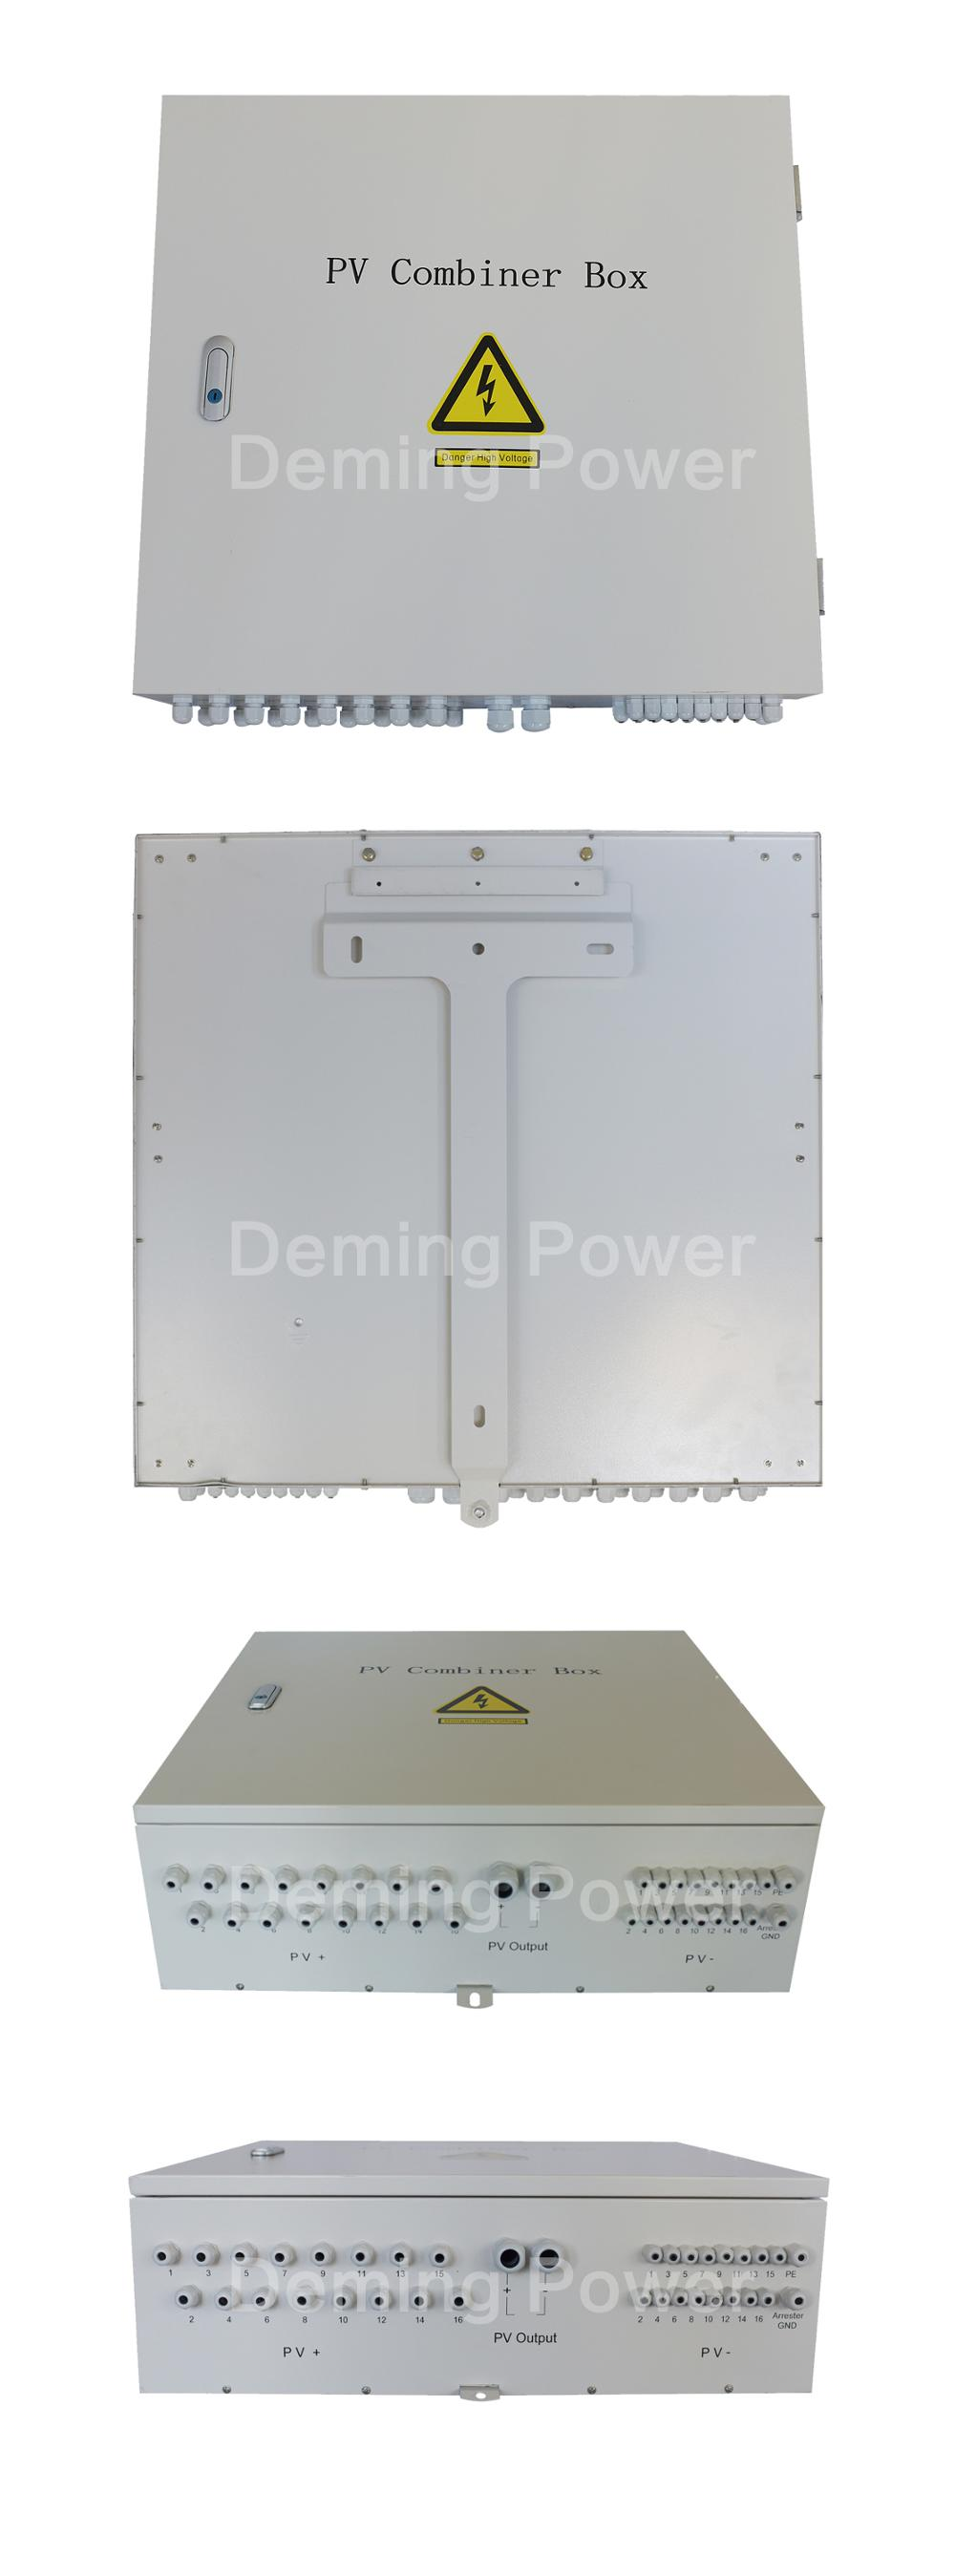 8 strings combiner box for solar power systems DC combiner box